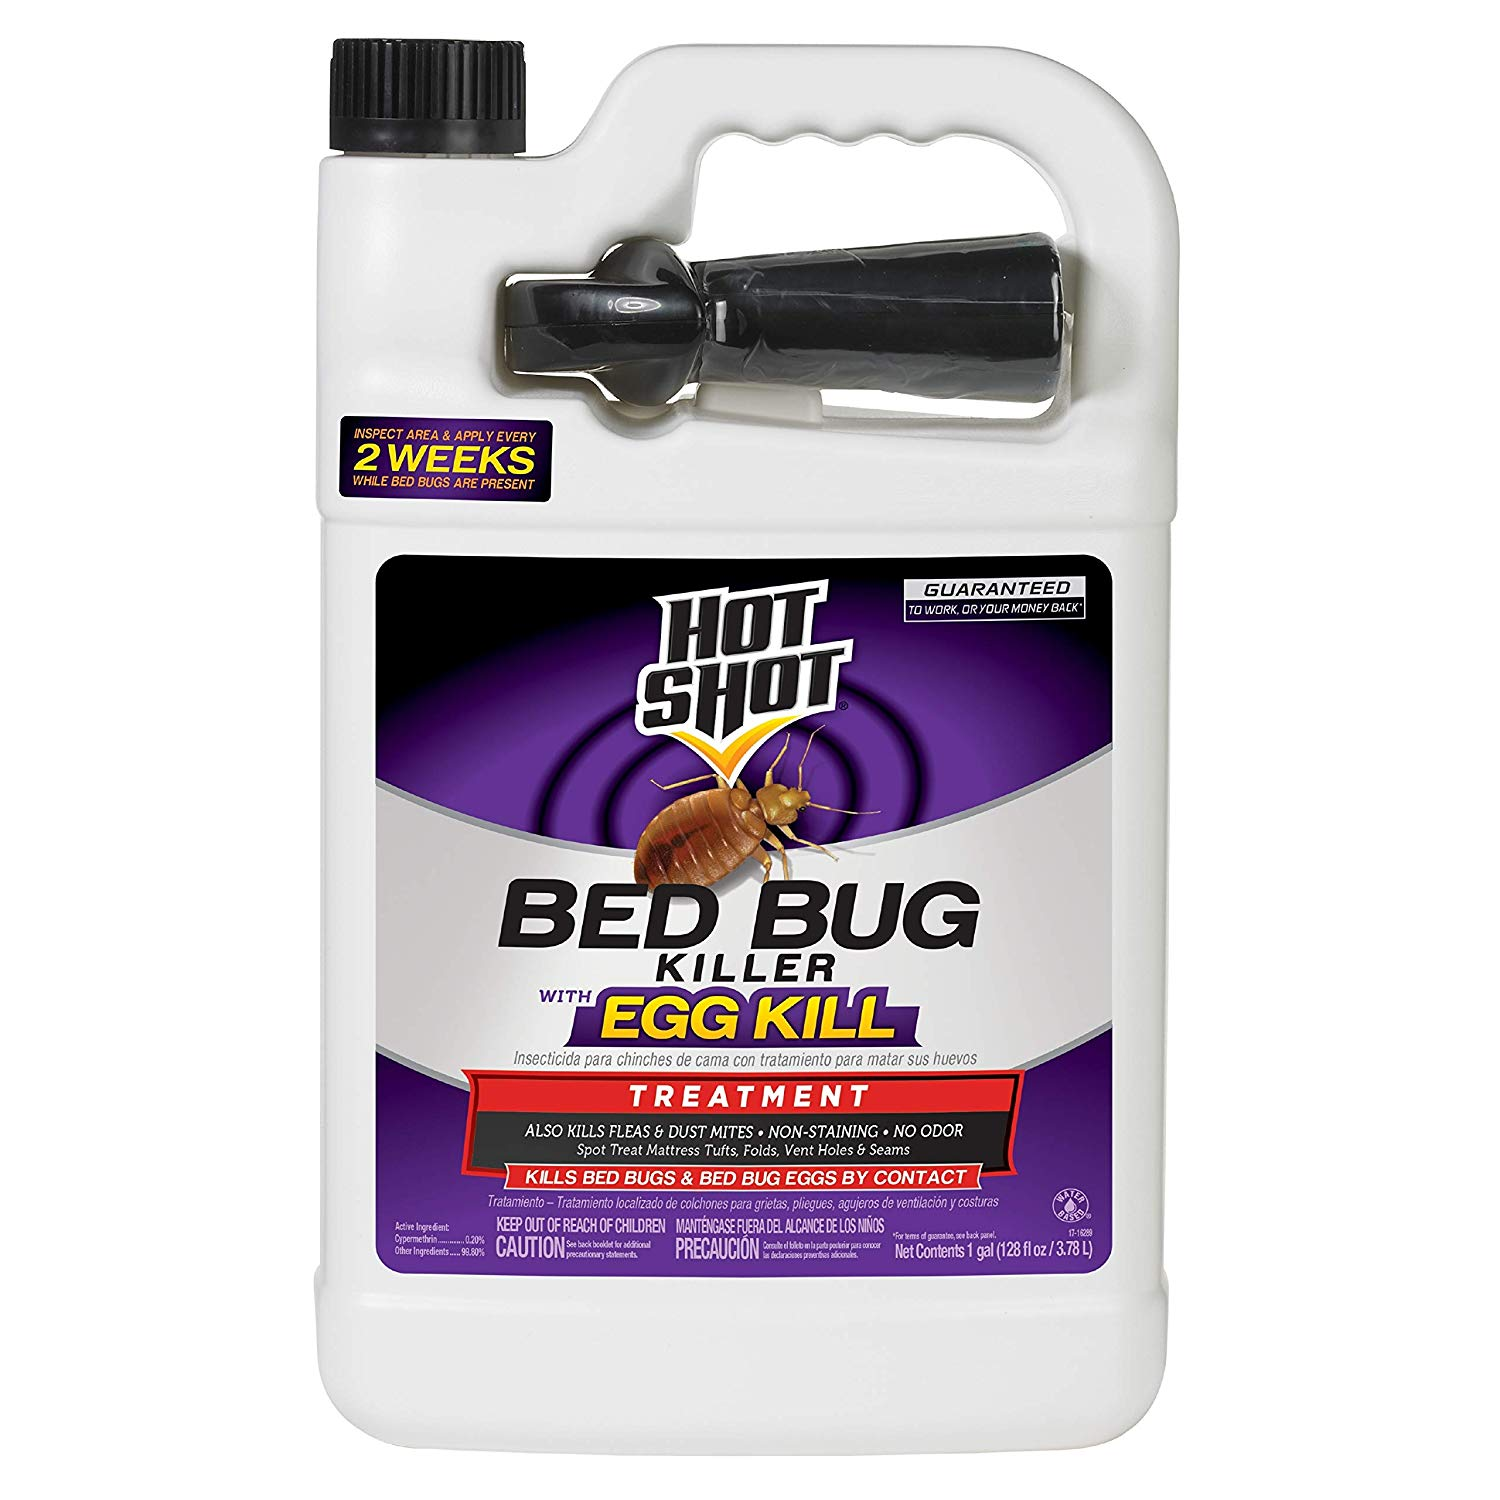 Hot Shot 96442 HG-96442 1 Gallon Ready-to-Use Bed Bug Home Insect Killer, Brown/A